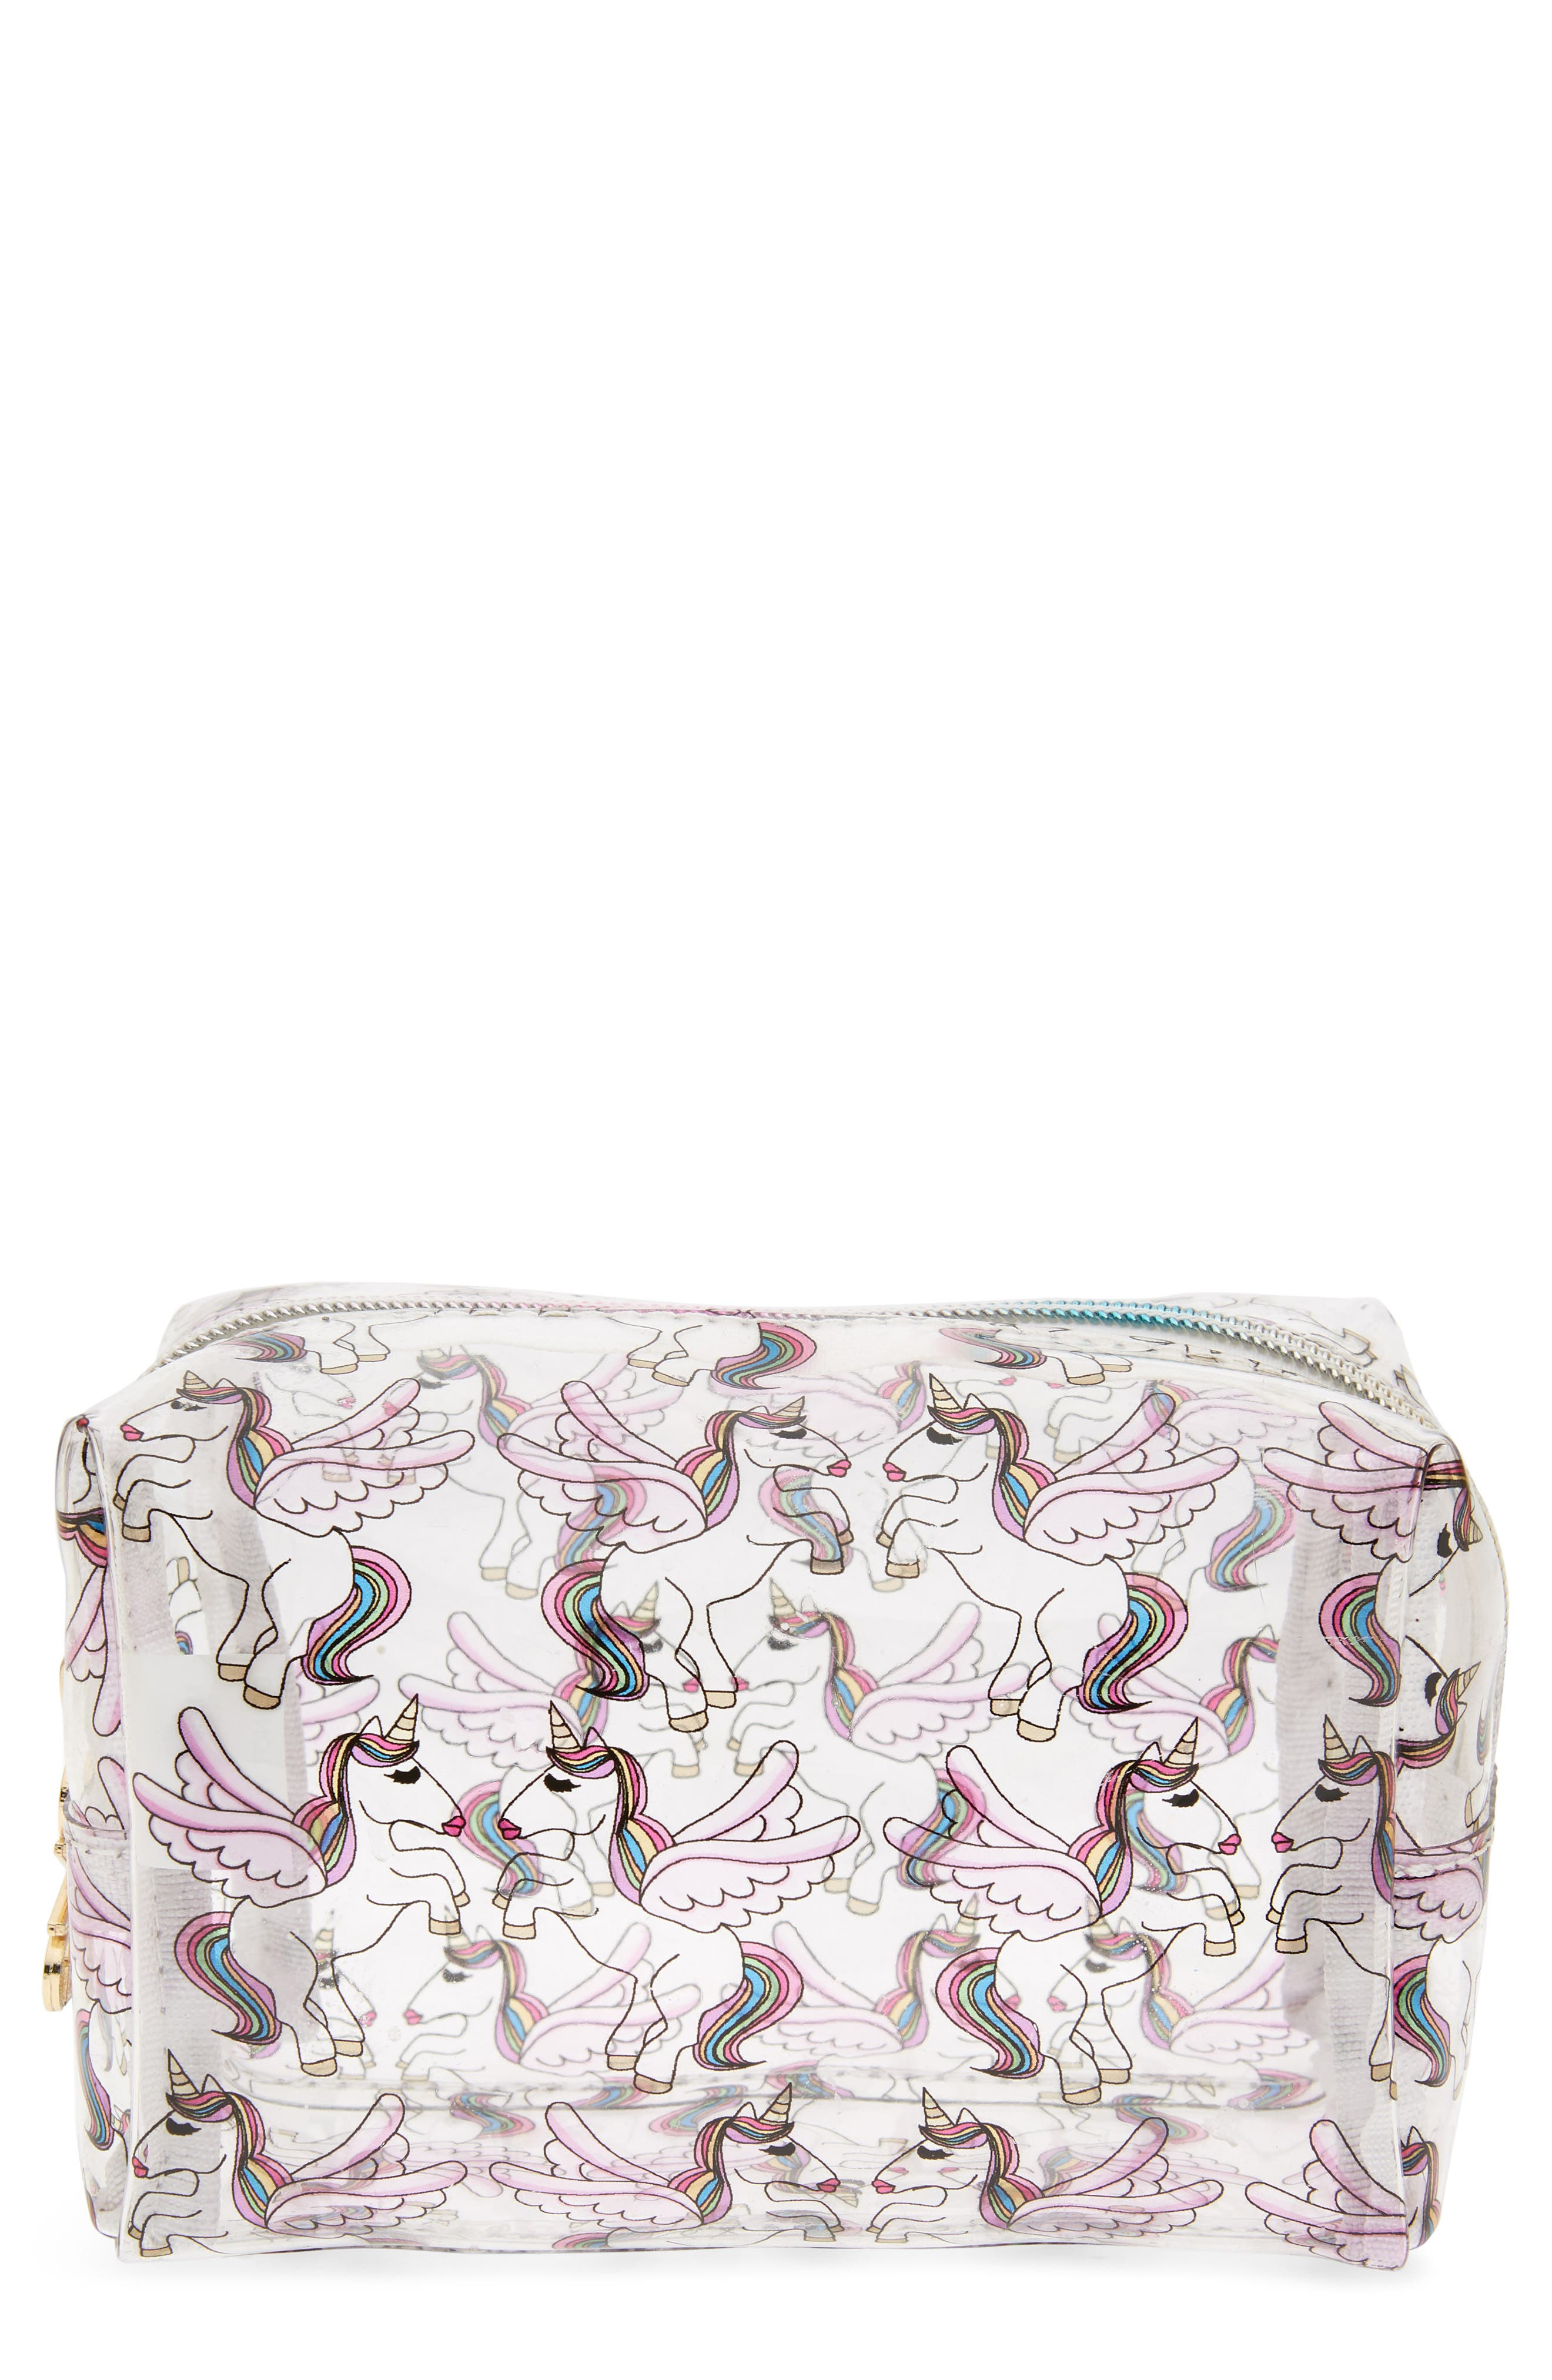 Unicorn Cosmetics Case,                         Main,                         color, Multi